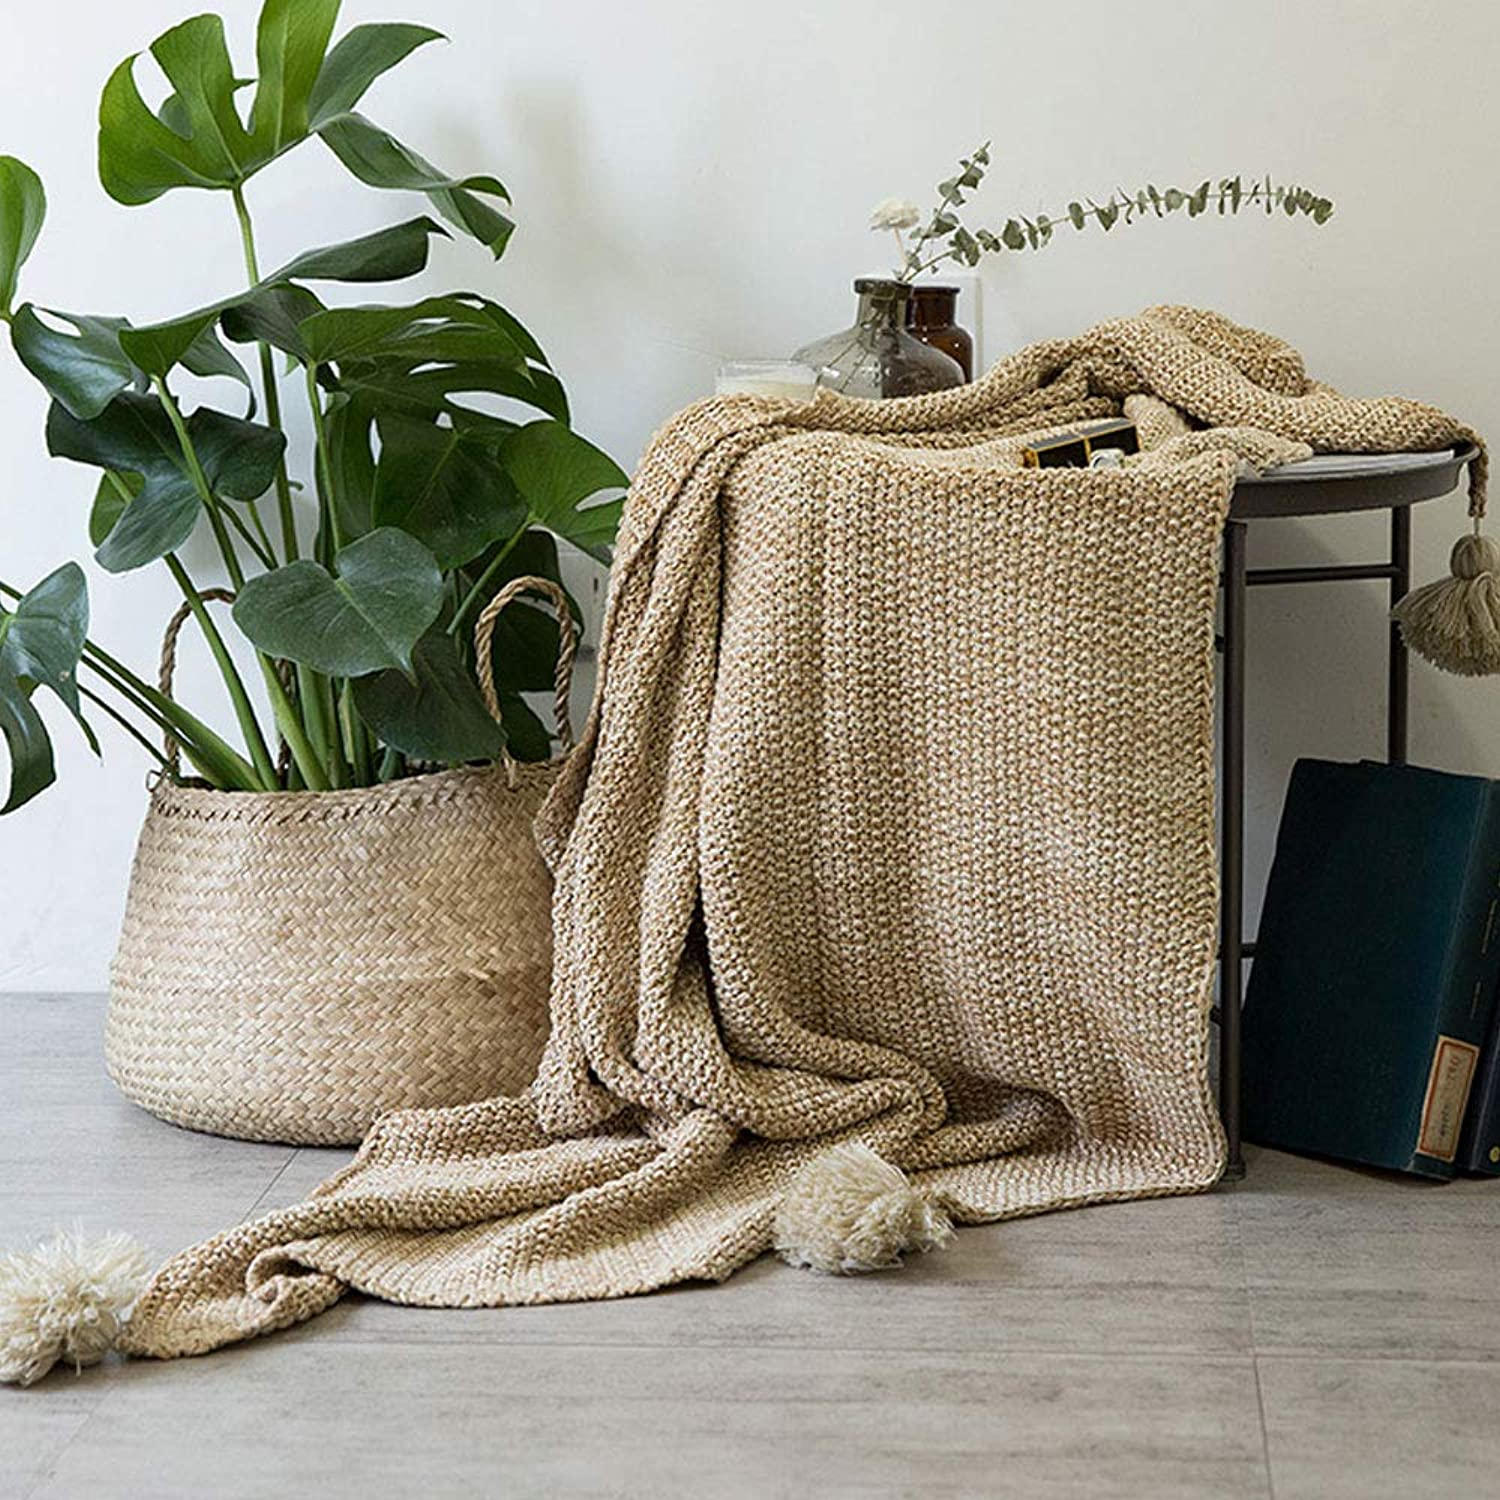 Tassel Wool Ball Cotton Knit blanket Casual blanket Single Cotton Thin blanket nap air Conditioning blanket (color   Camel, Size   5118  66.93)